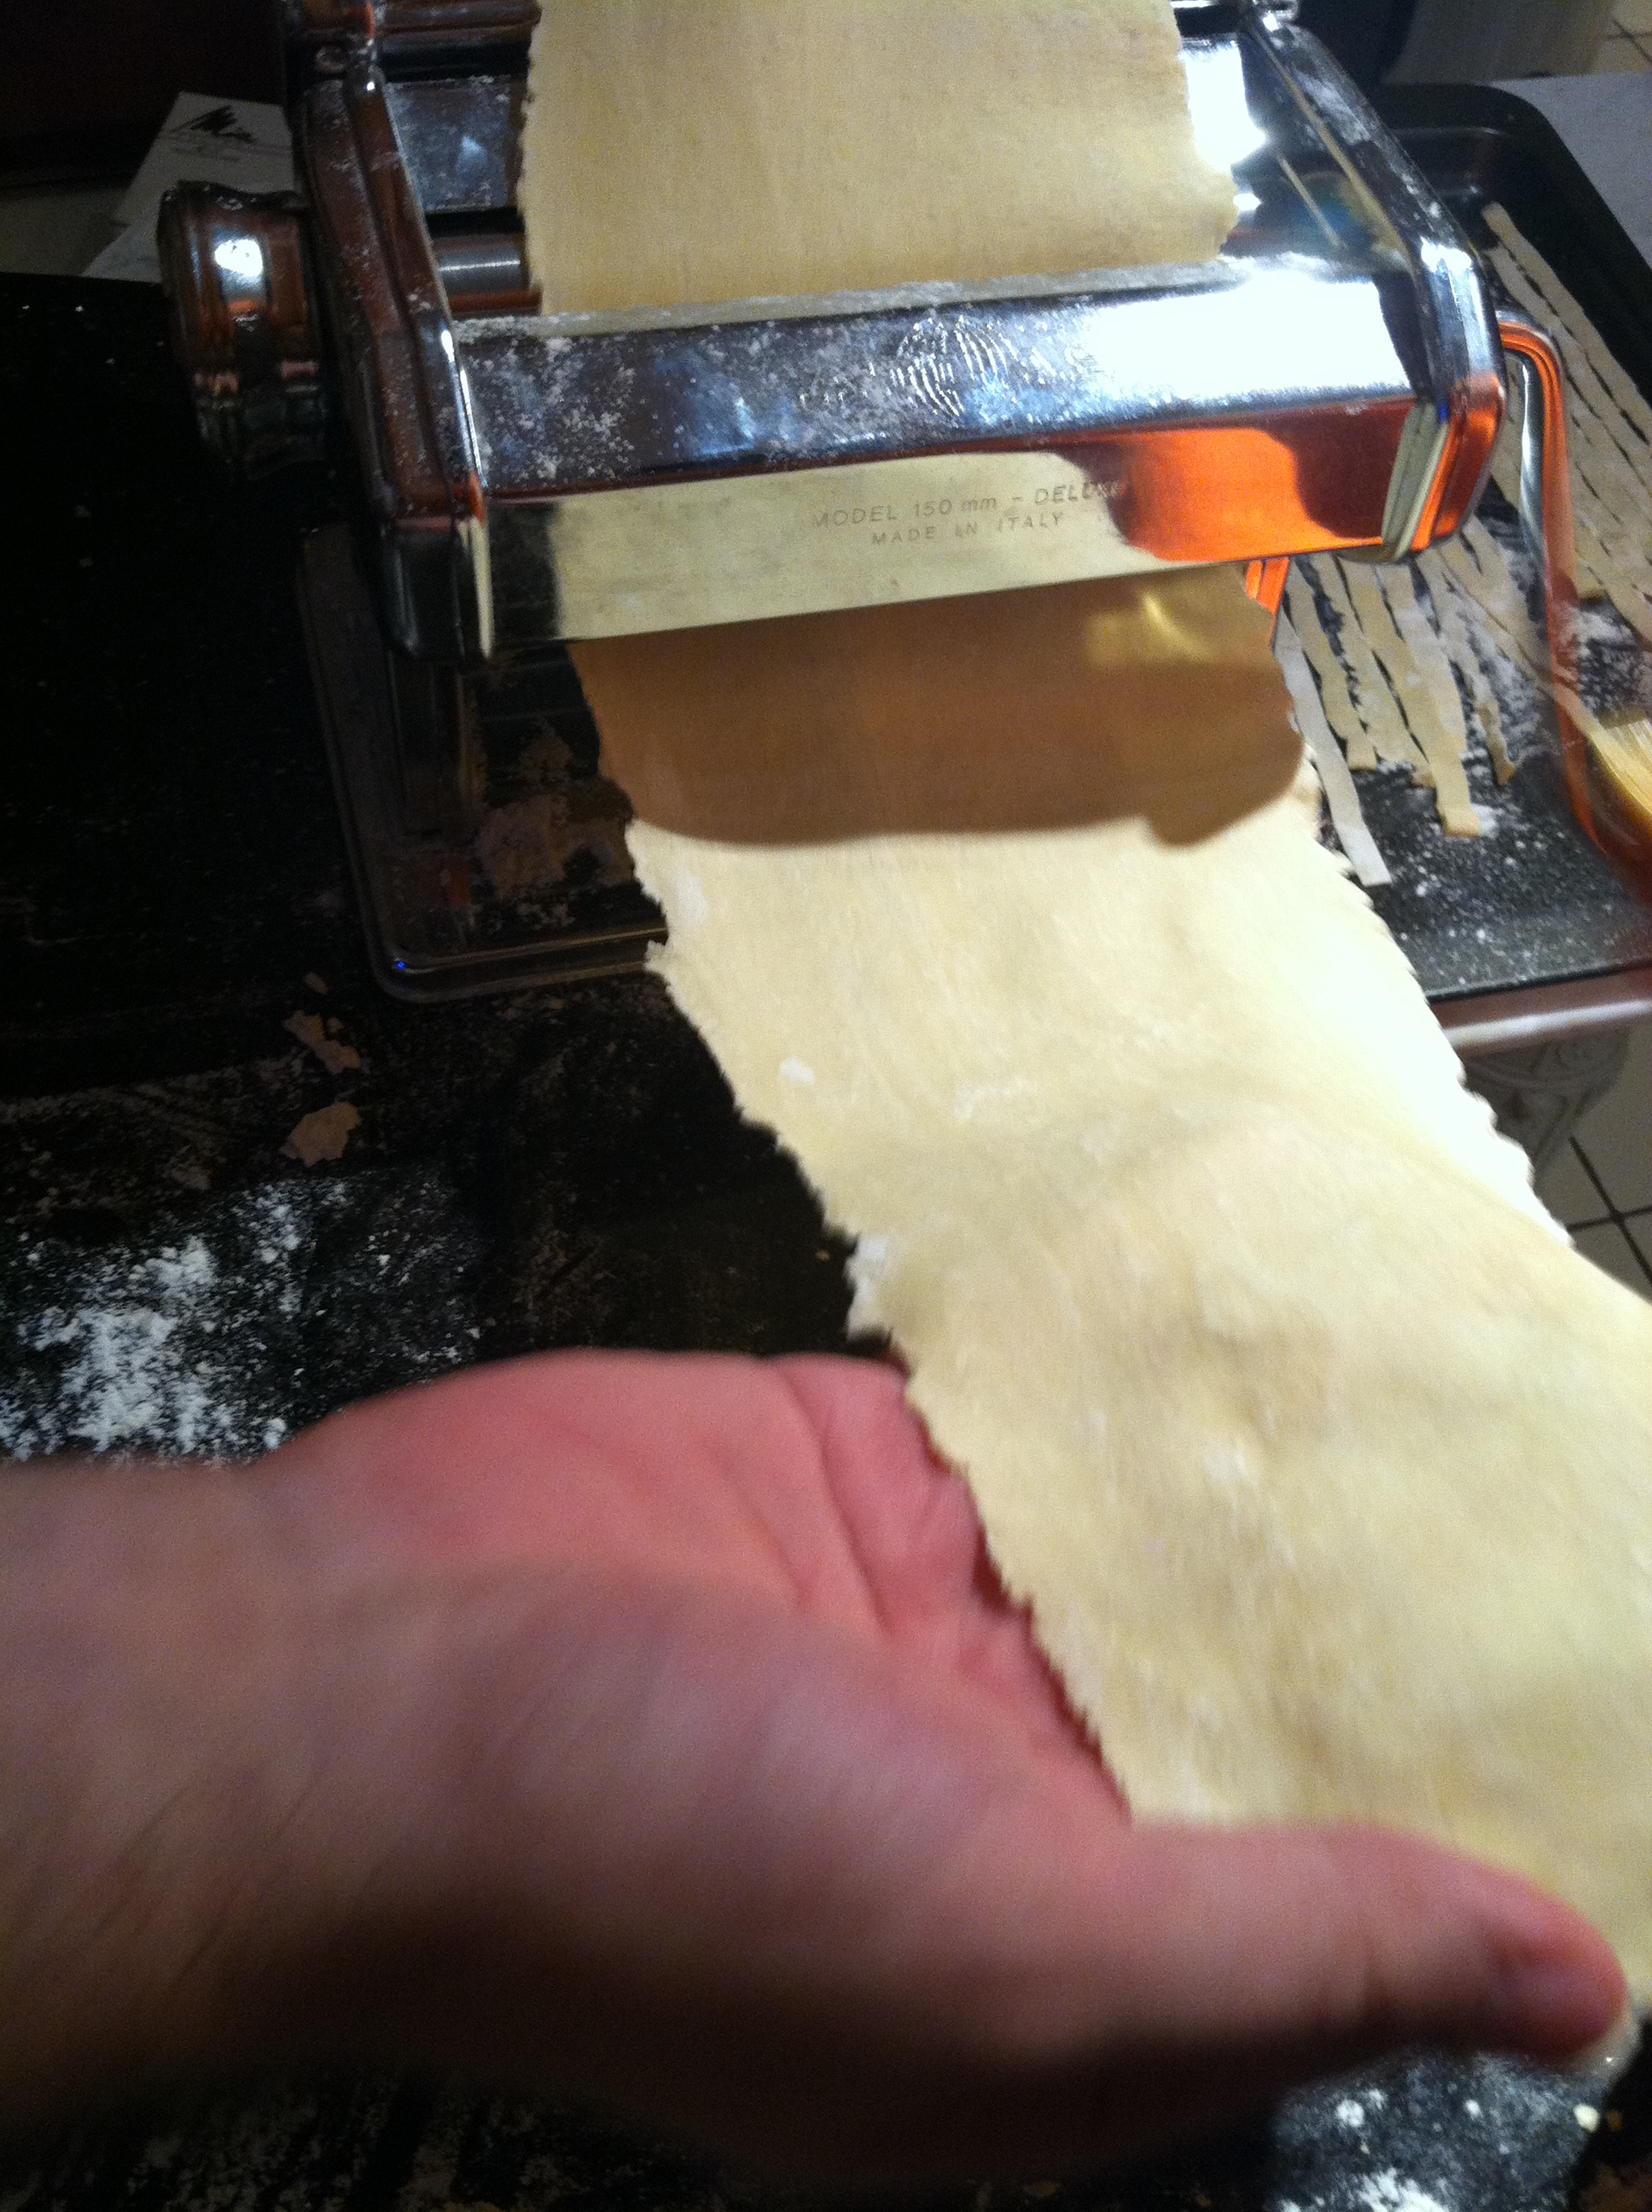 Cupcakes for Breakfast: rolling out homemade pasta on a pasta machine